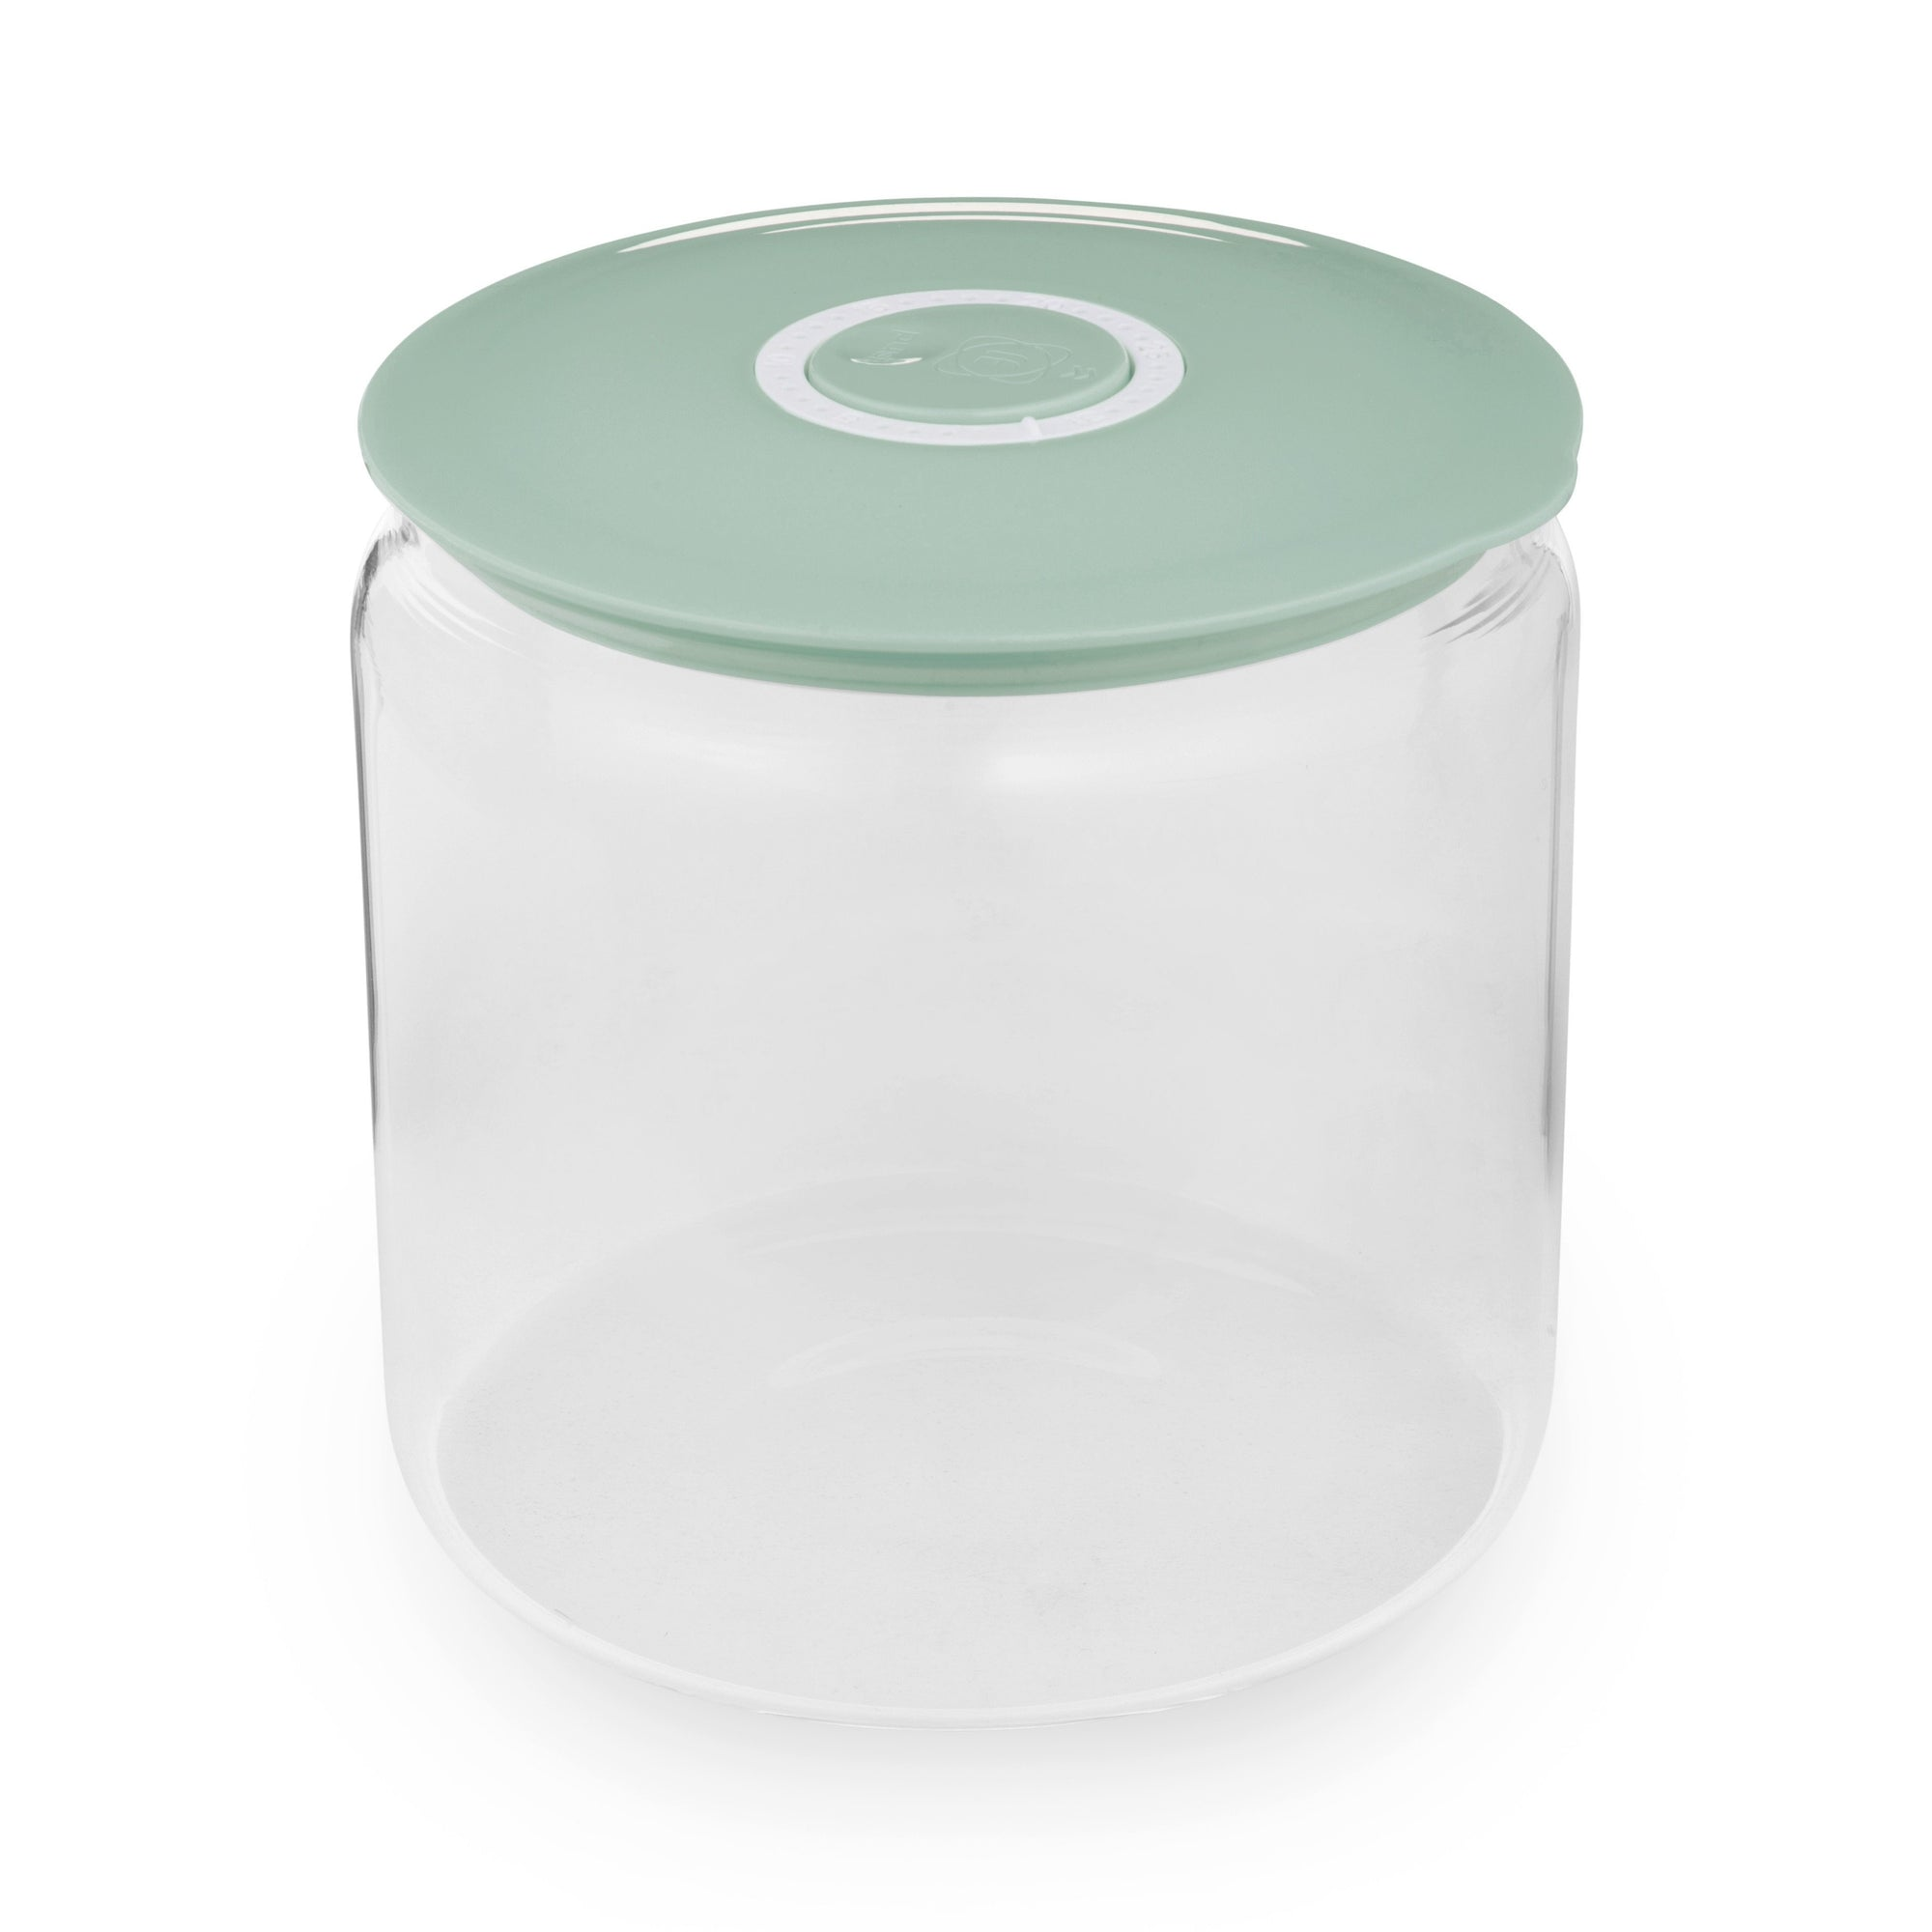 luvele-eu - Luvele 2 Litre Glass Yoghurt Container | Compatible with Pure Plus Yoghurt Maker